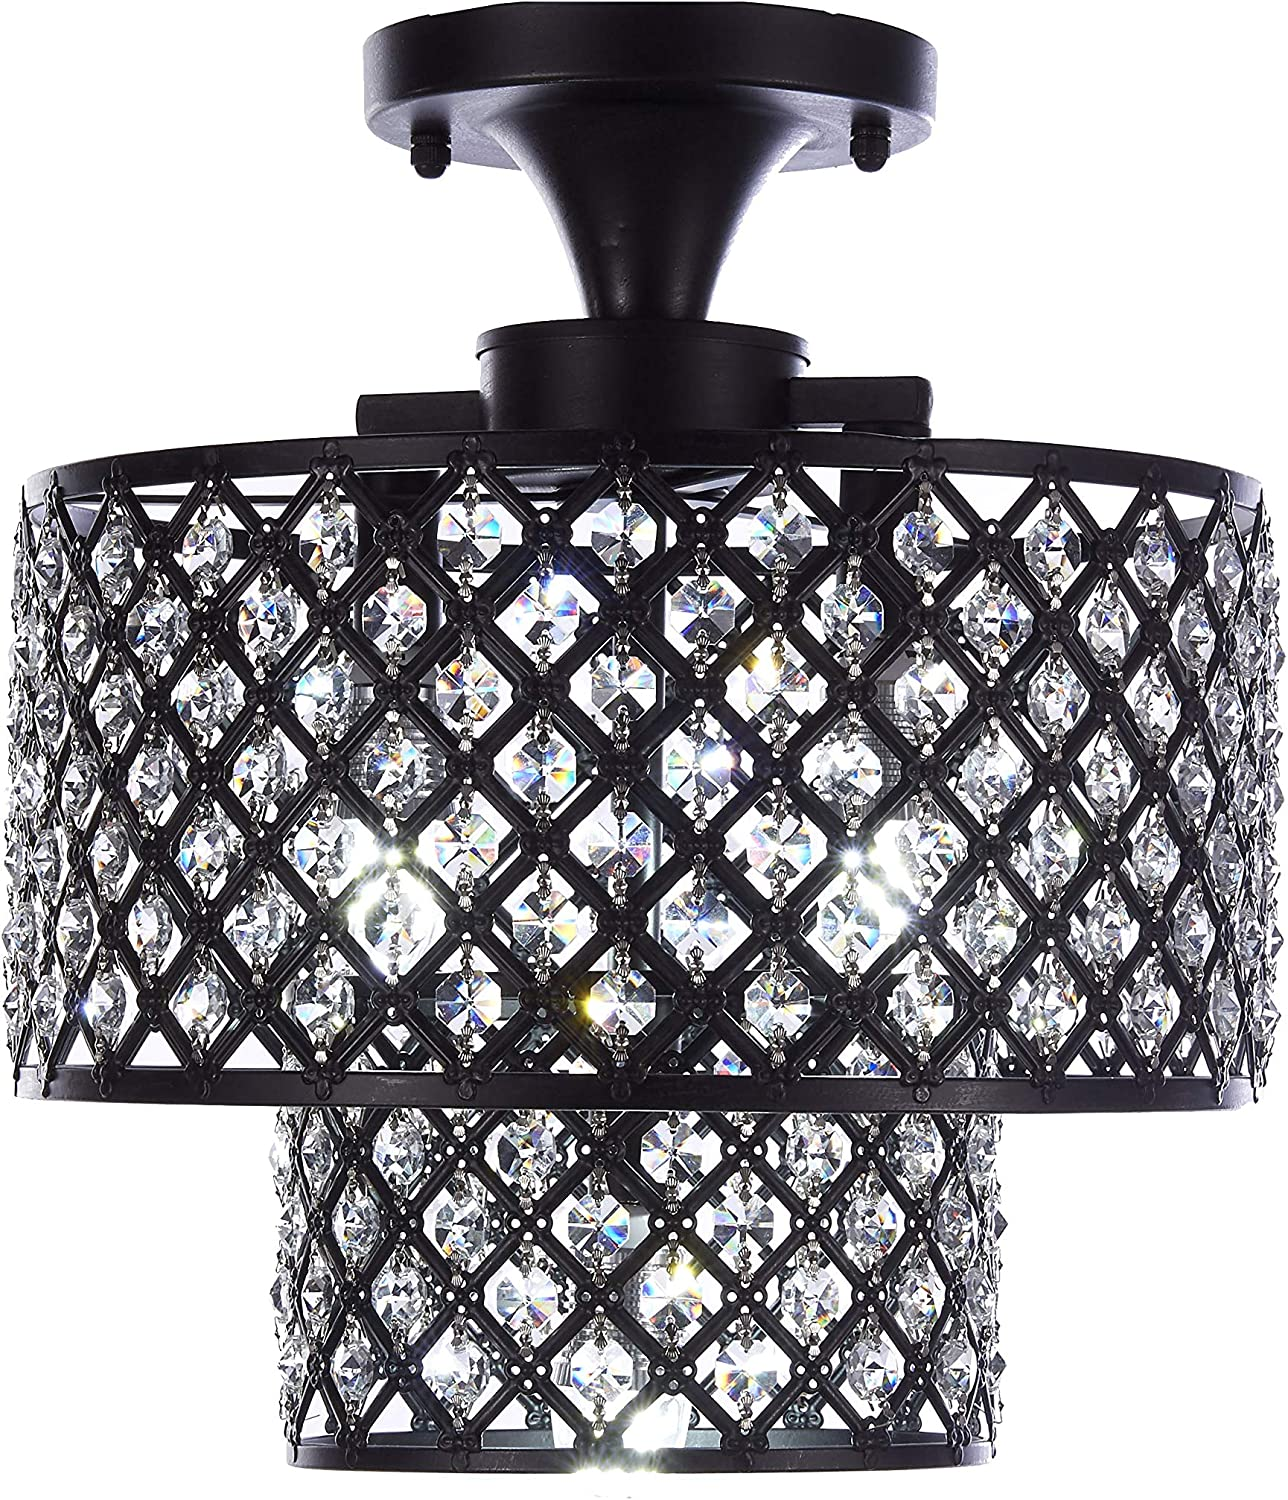 Top Lighting Antique Black Finish 3-Light Semi-Flush Mount Dual Iron Shades Crystal Chandelier